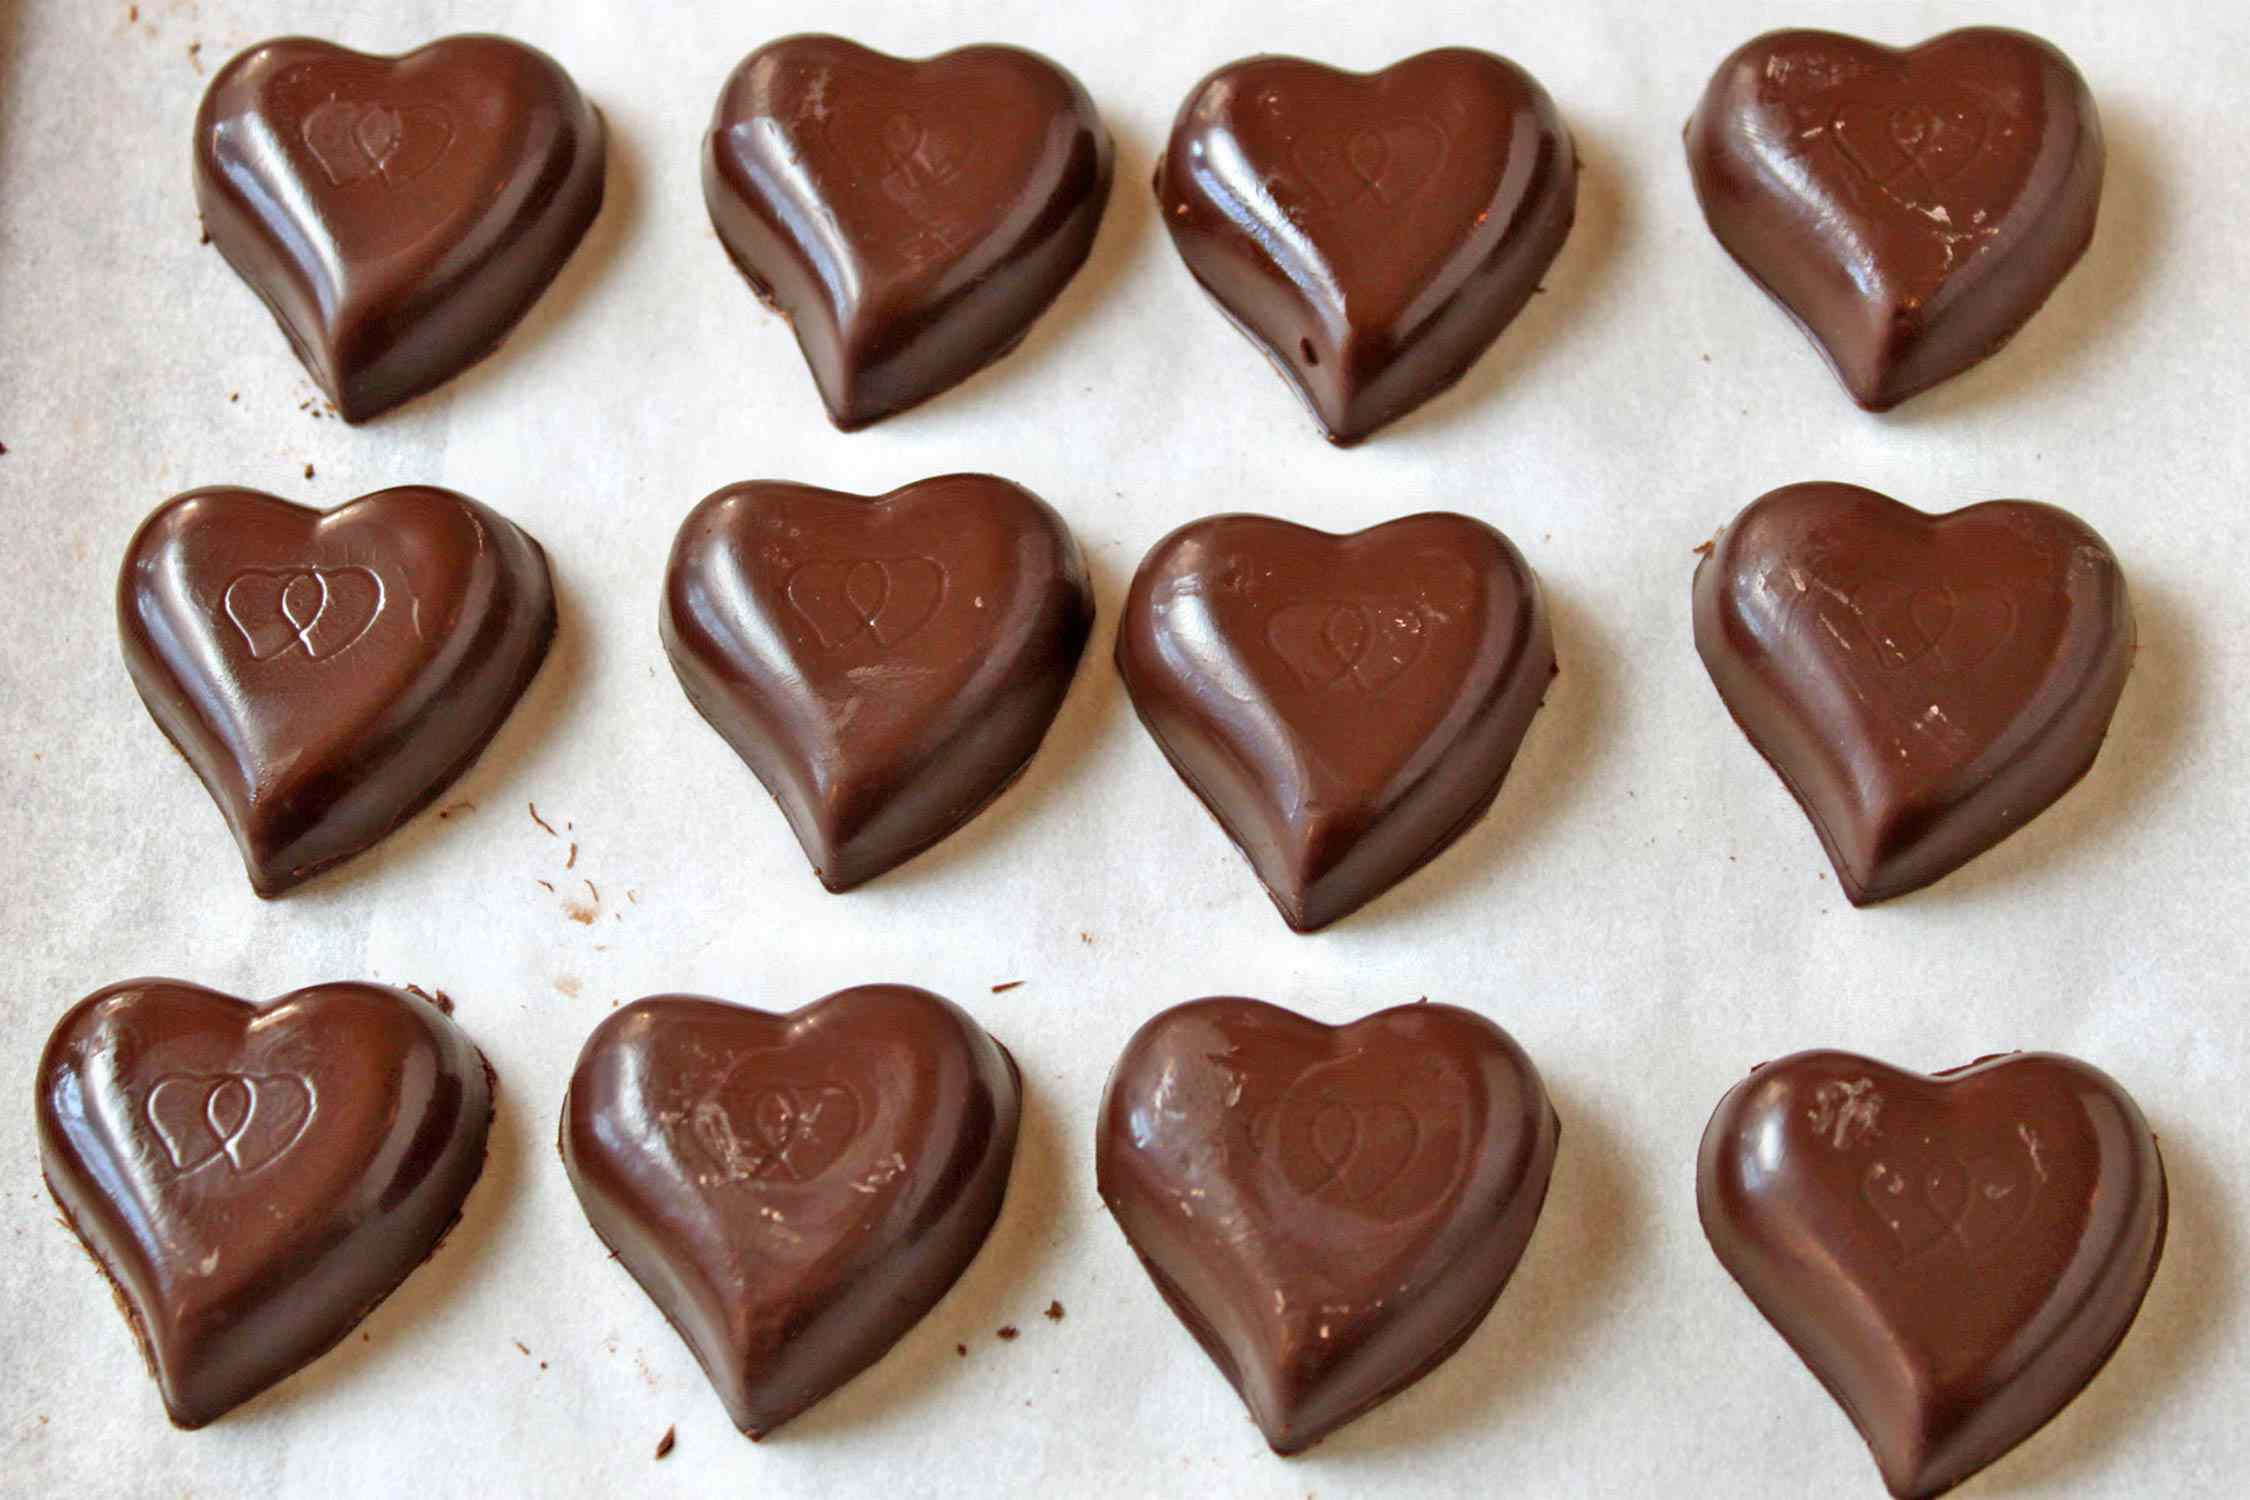 Molded Chocolate Candies finished